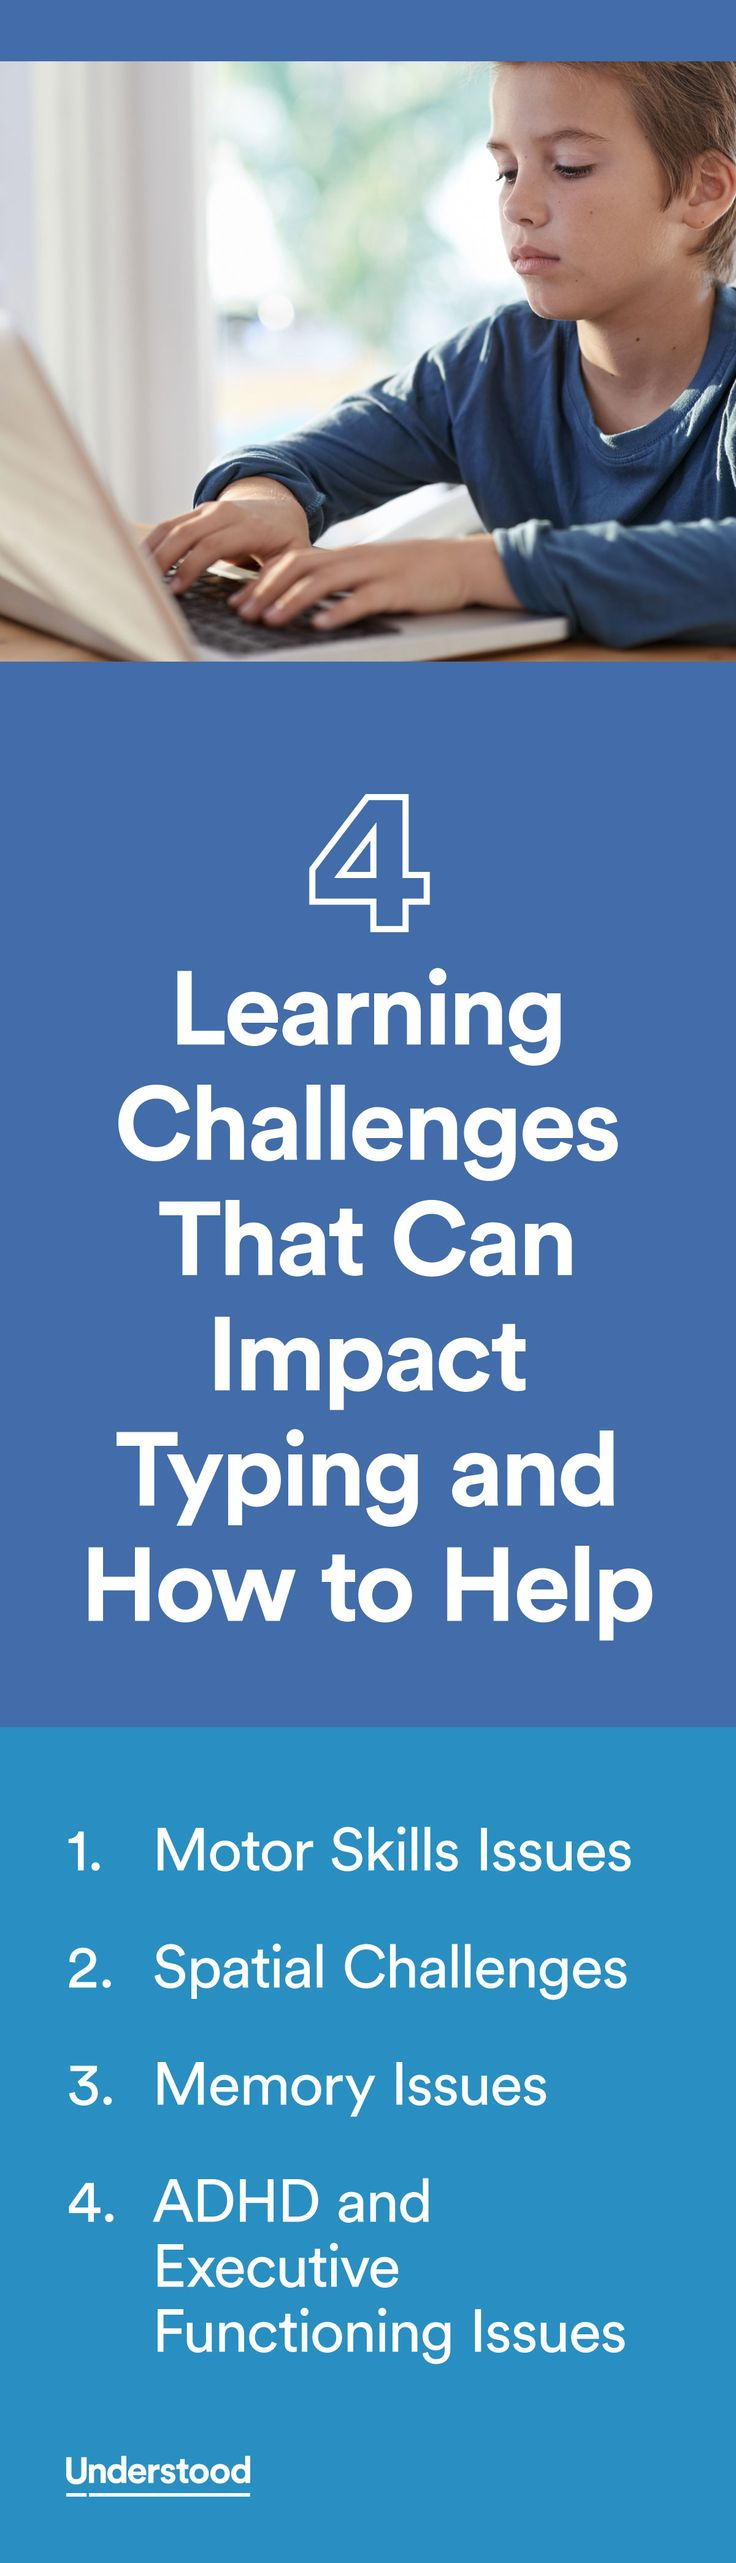 Many kids with learning and attention issues prefer to type rather than write by hand because typing makes writing easier. But that's not always the case for kids with certain challenges, includingADHDandmotor skills issues.